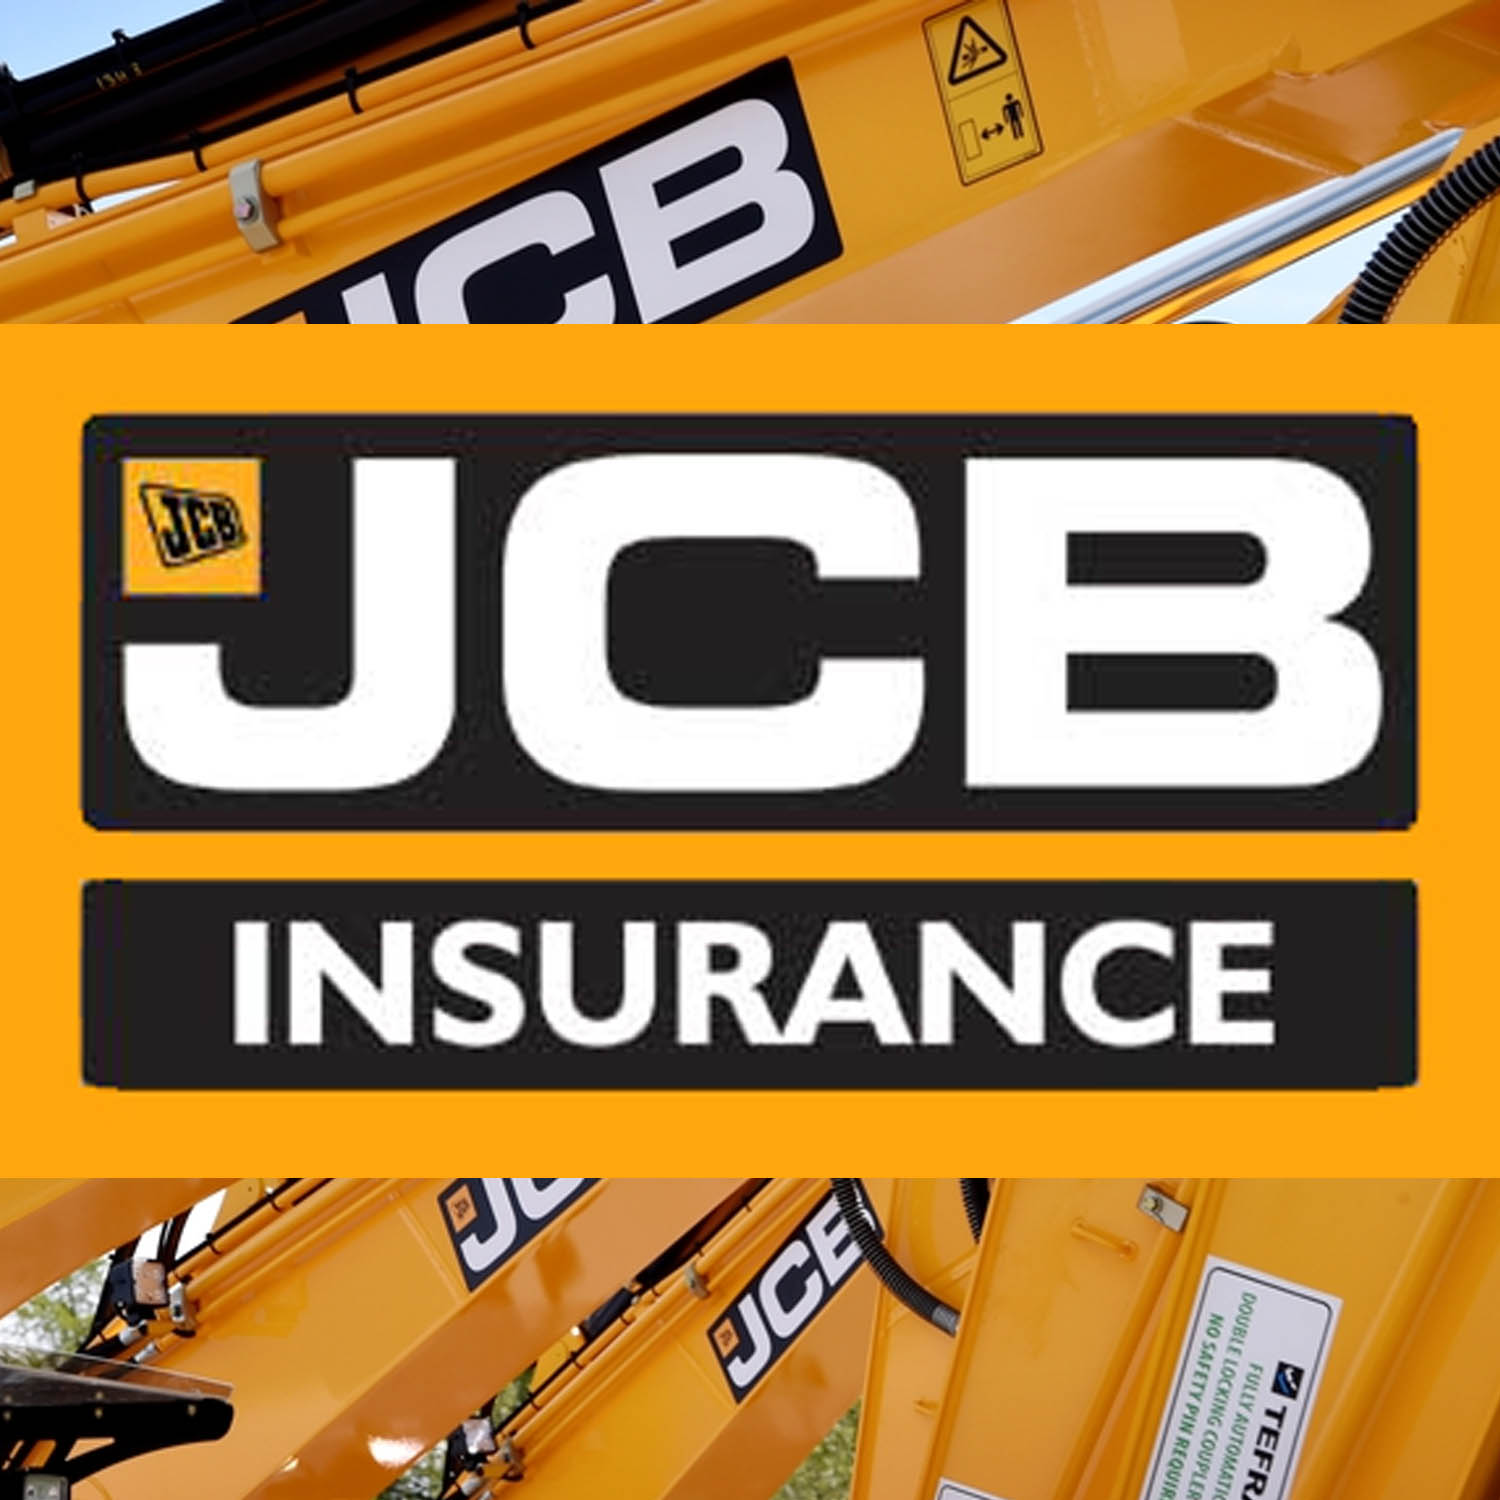 Get Insurance easily and quickly with JCB Hired in insurance through the Plant-Fit Website